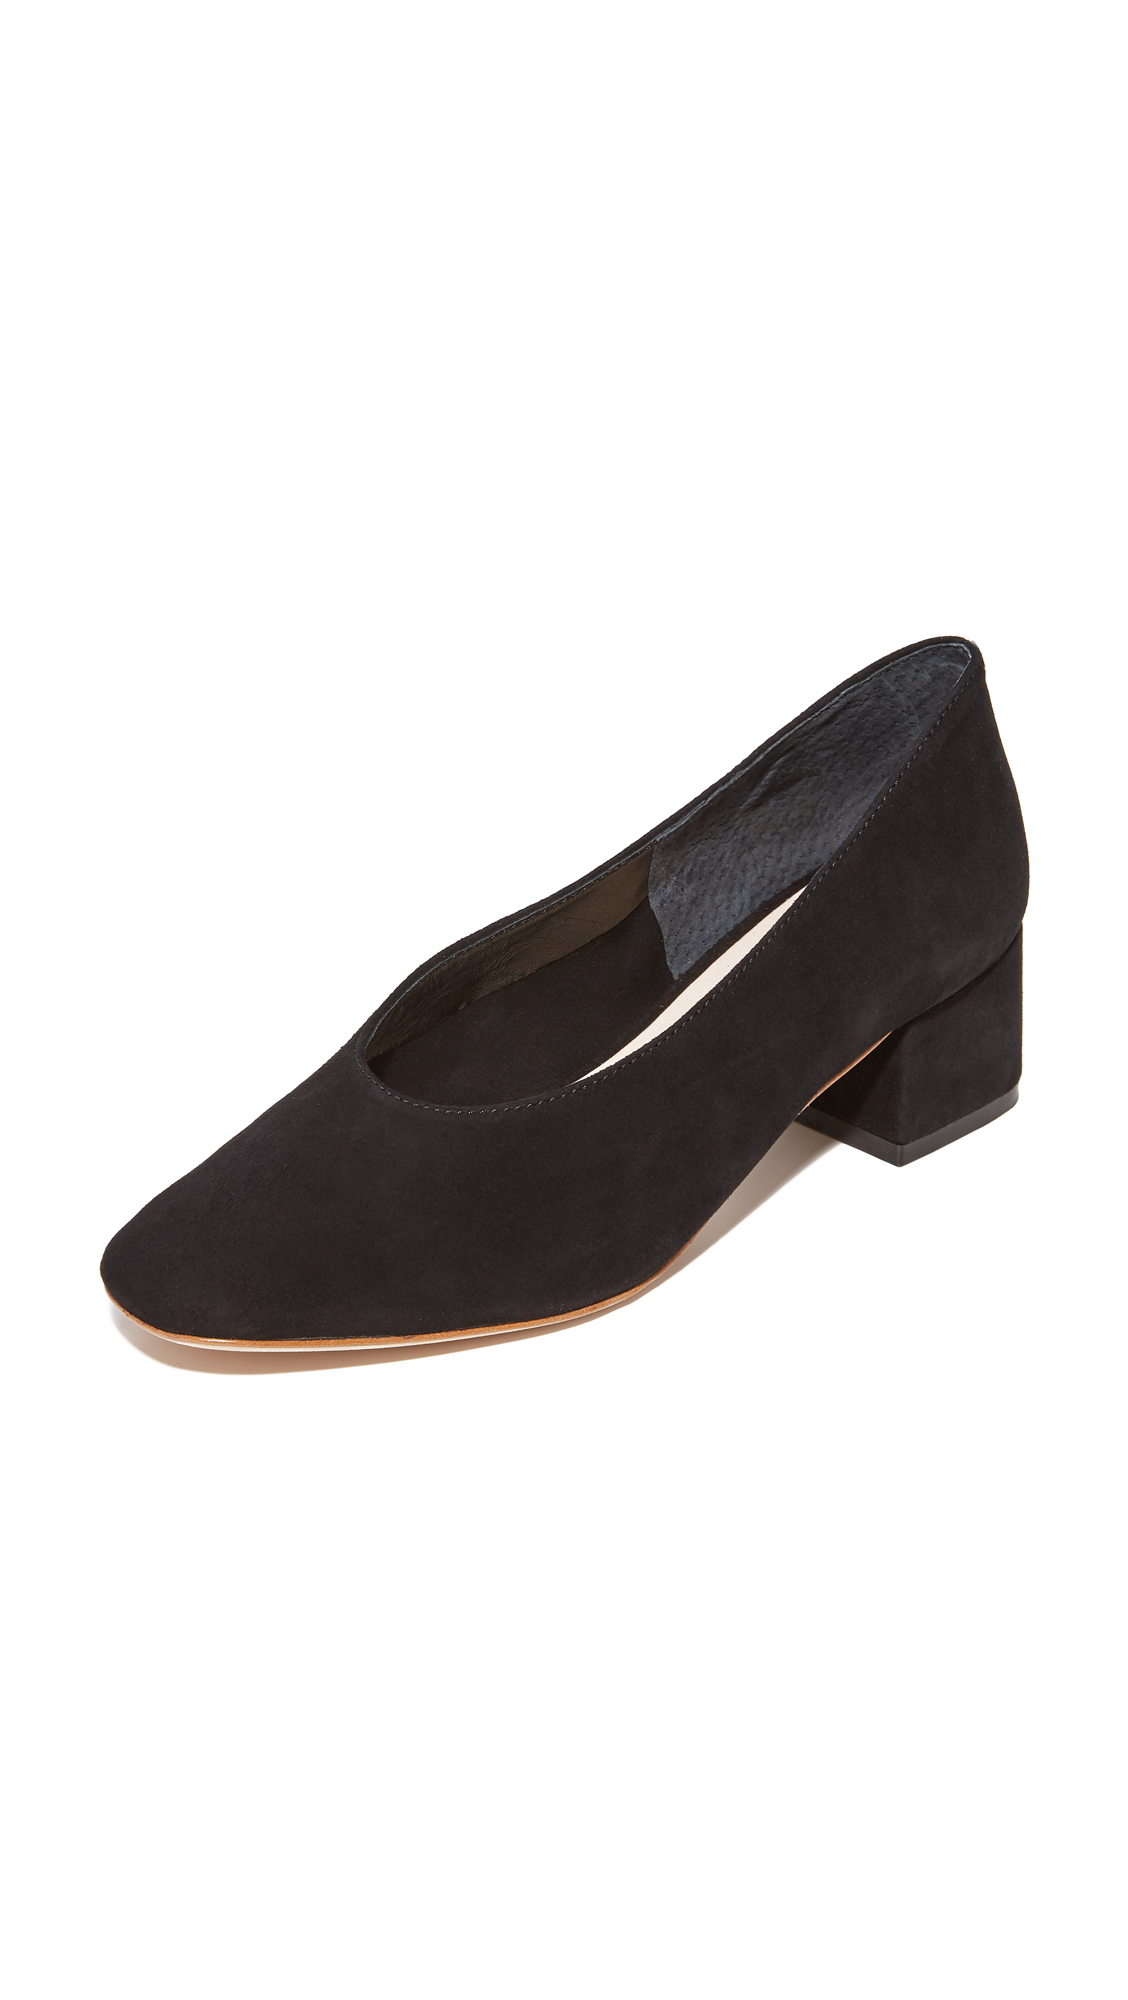 Loeffler Randall Brooks Low Heel Pumps - Black